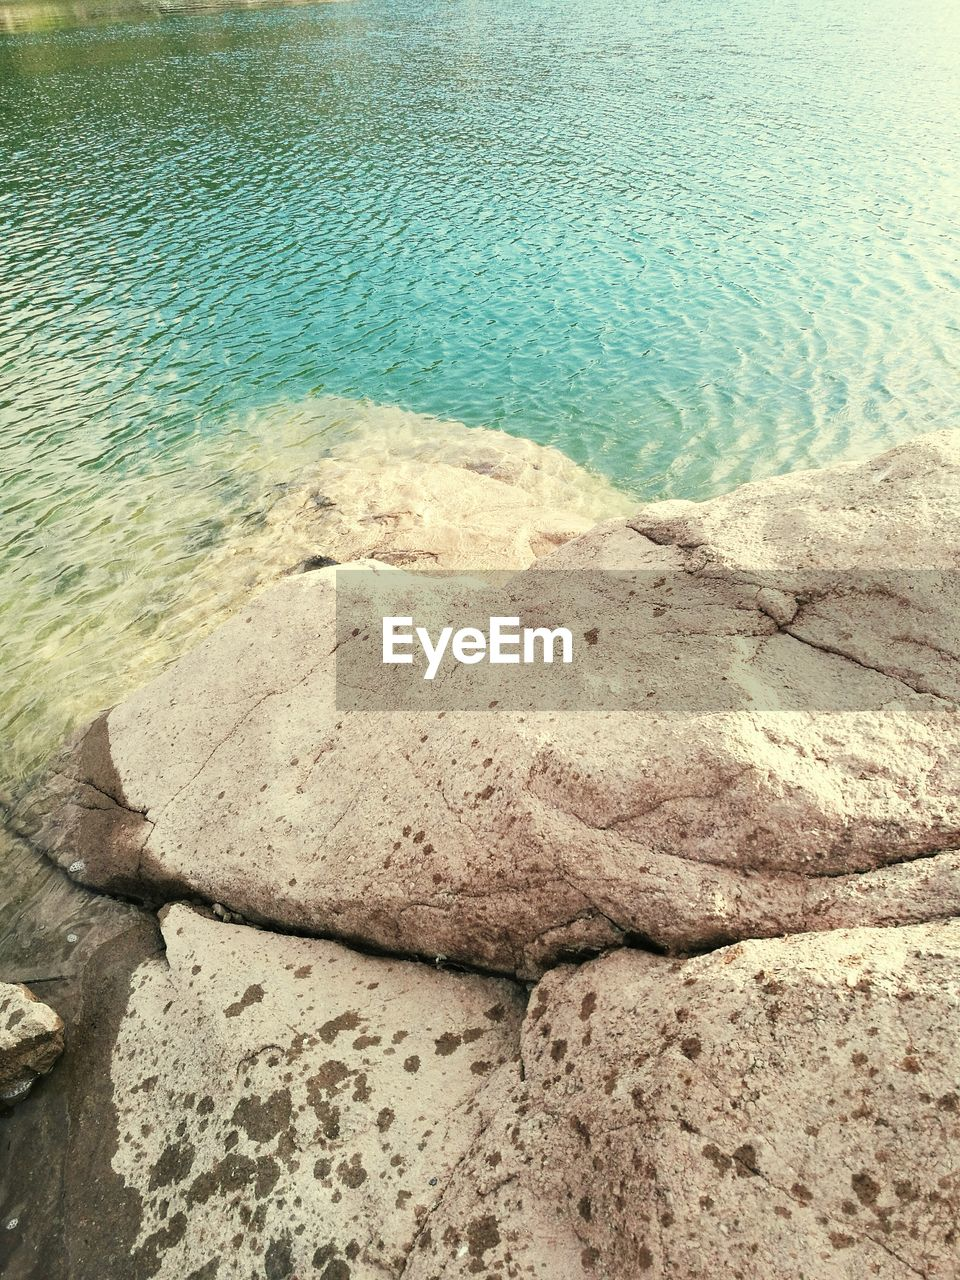 water, sea, tranquility, beauty in nature, nature, day, beach, tranquil scene, land, no people, rock, scenics - nature, solid, rock - object, high angle view, idyllic, outdoors, sand, non-urban scene, turquoise colored